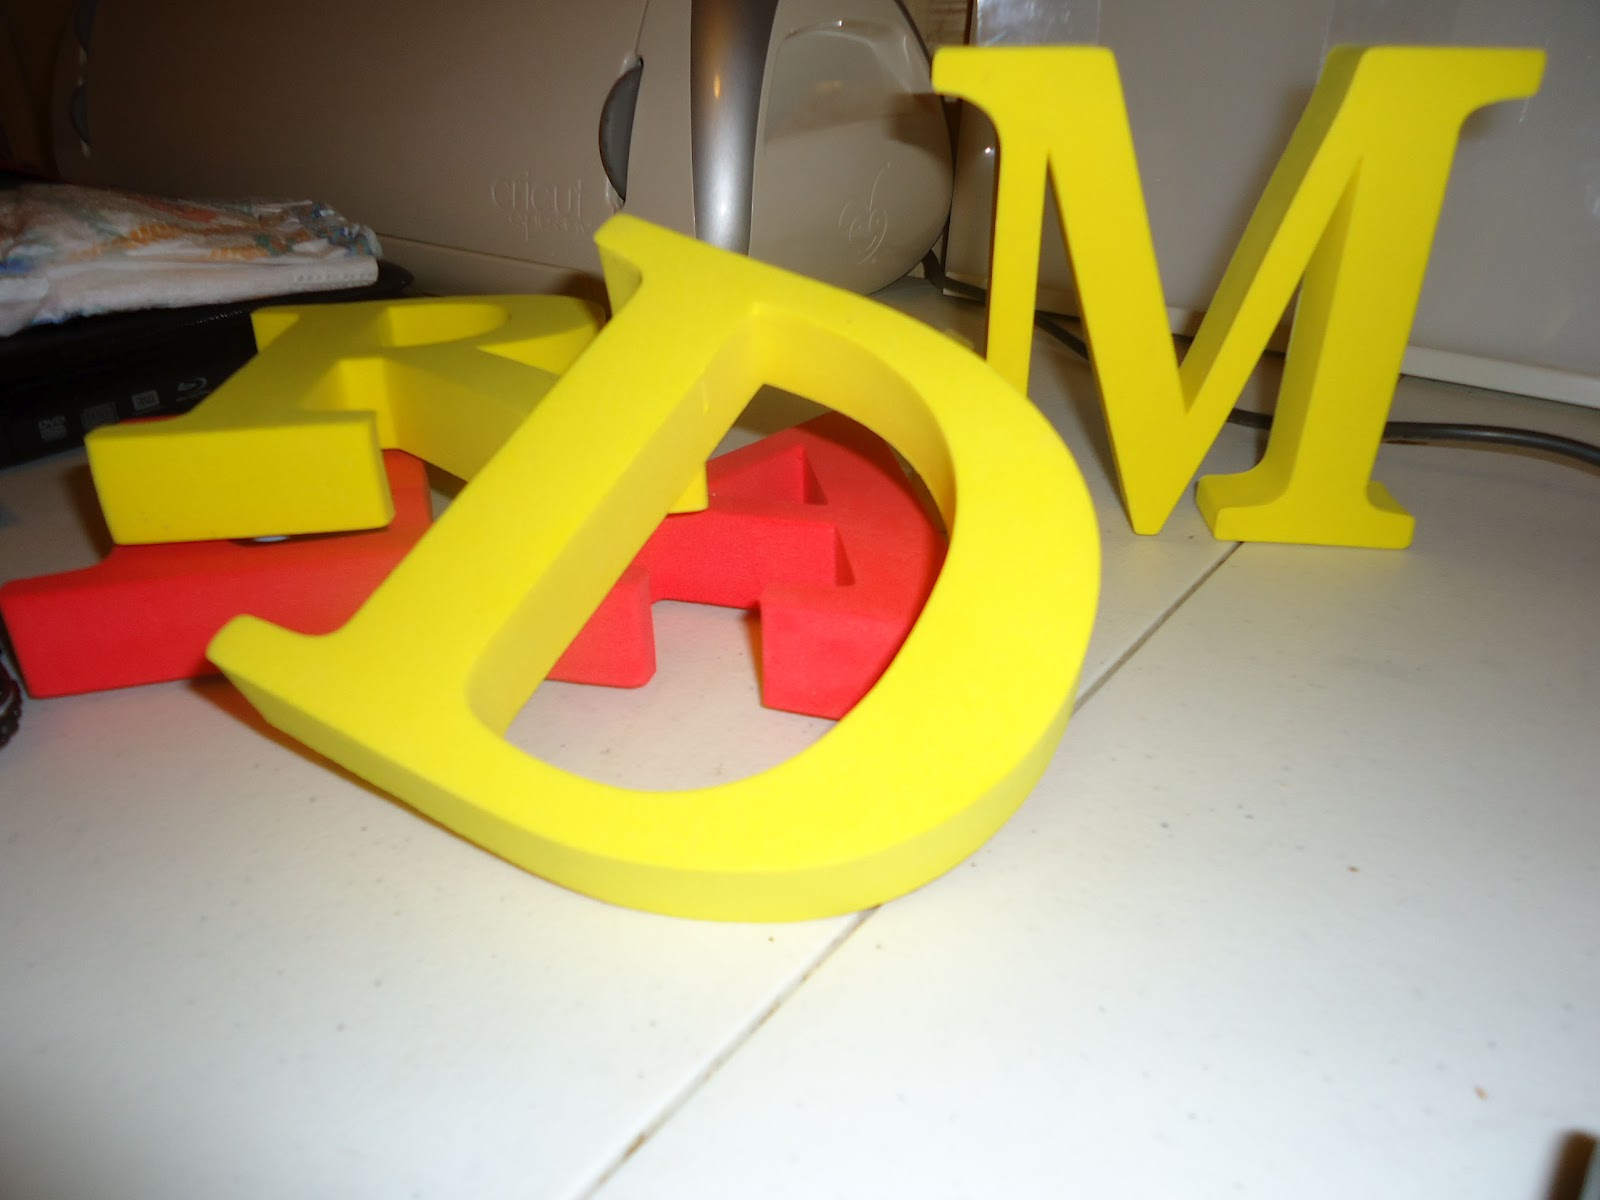 Frugal home design diy decorative letters cheap for Giant foam letters diy